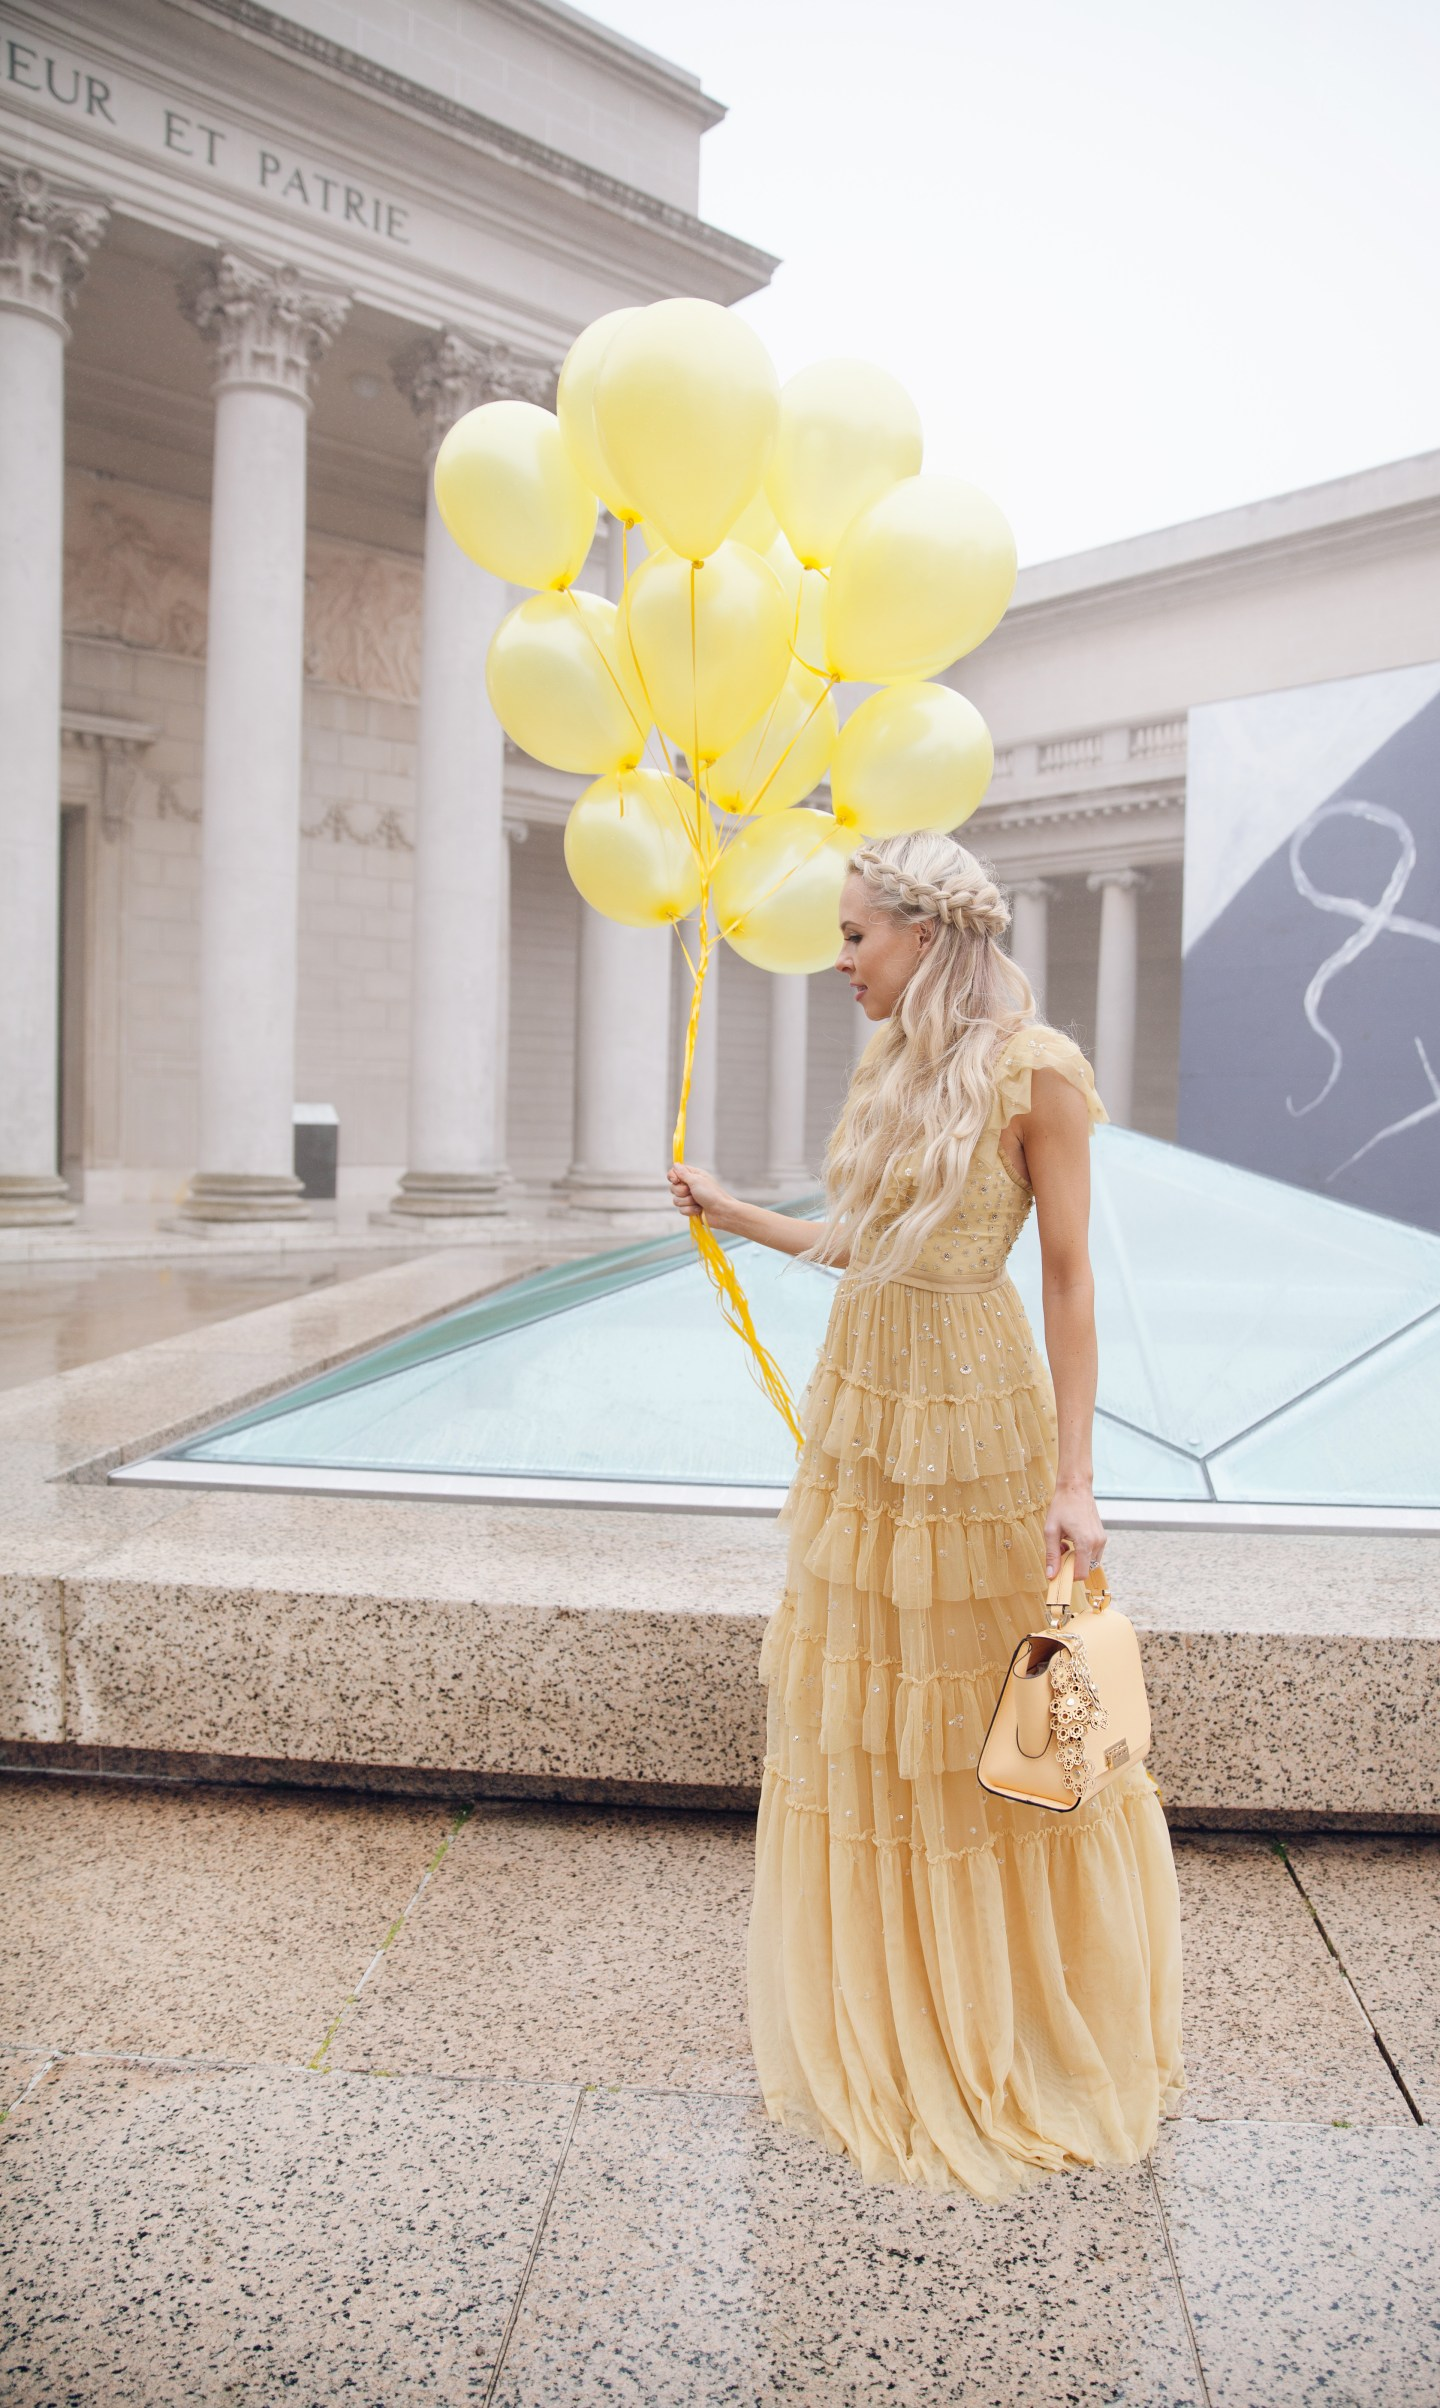 how to eBay, my style journey, needle & thread dress maxi yellow embroidered   Top San Francisco fashion blog, Lombard and Fifth, features her tips on How to Ebay effectively: image of a blonde woman wearing a stunning maxi dress found on Ebay